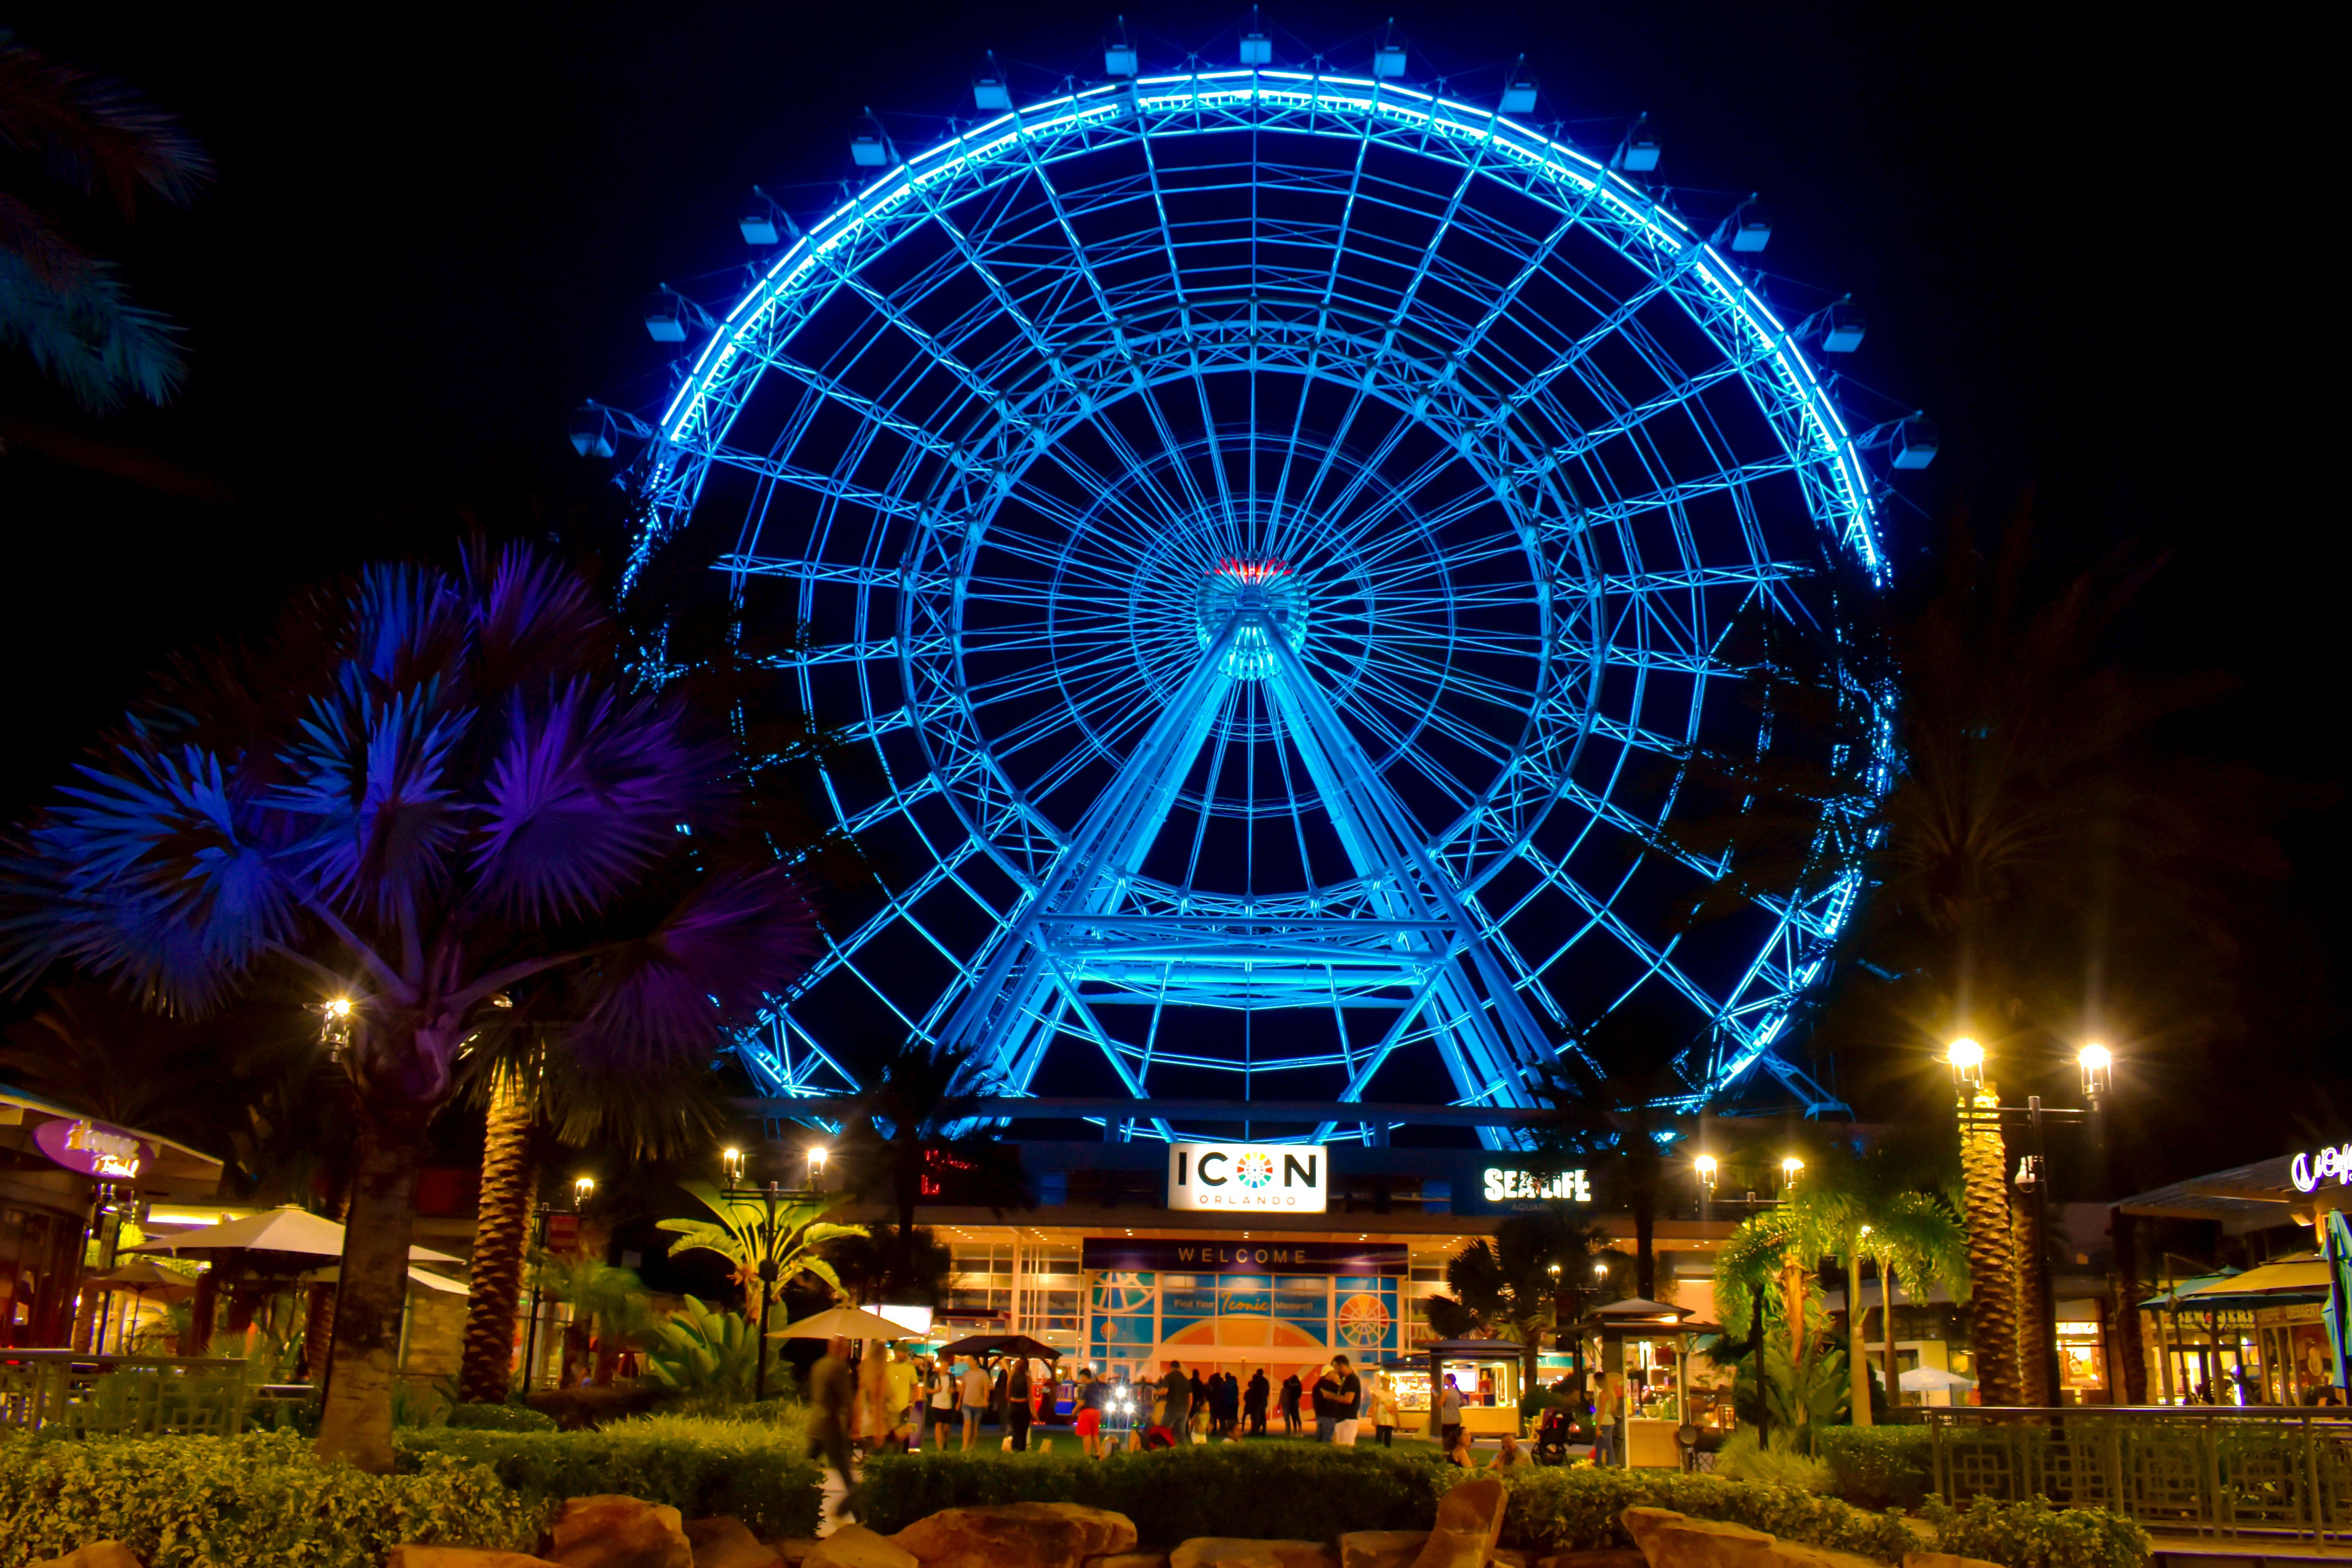 The Illuminated and colorful big wheel at night in the International Drive area